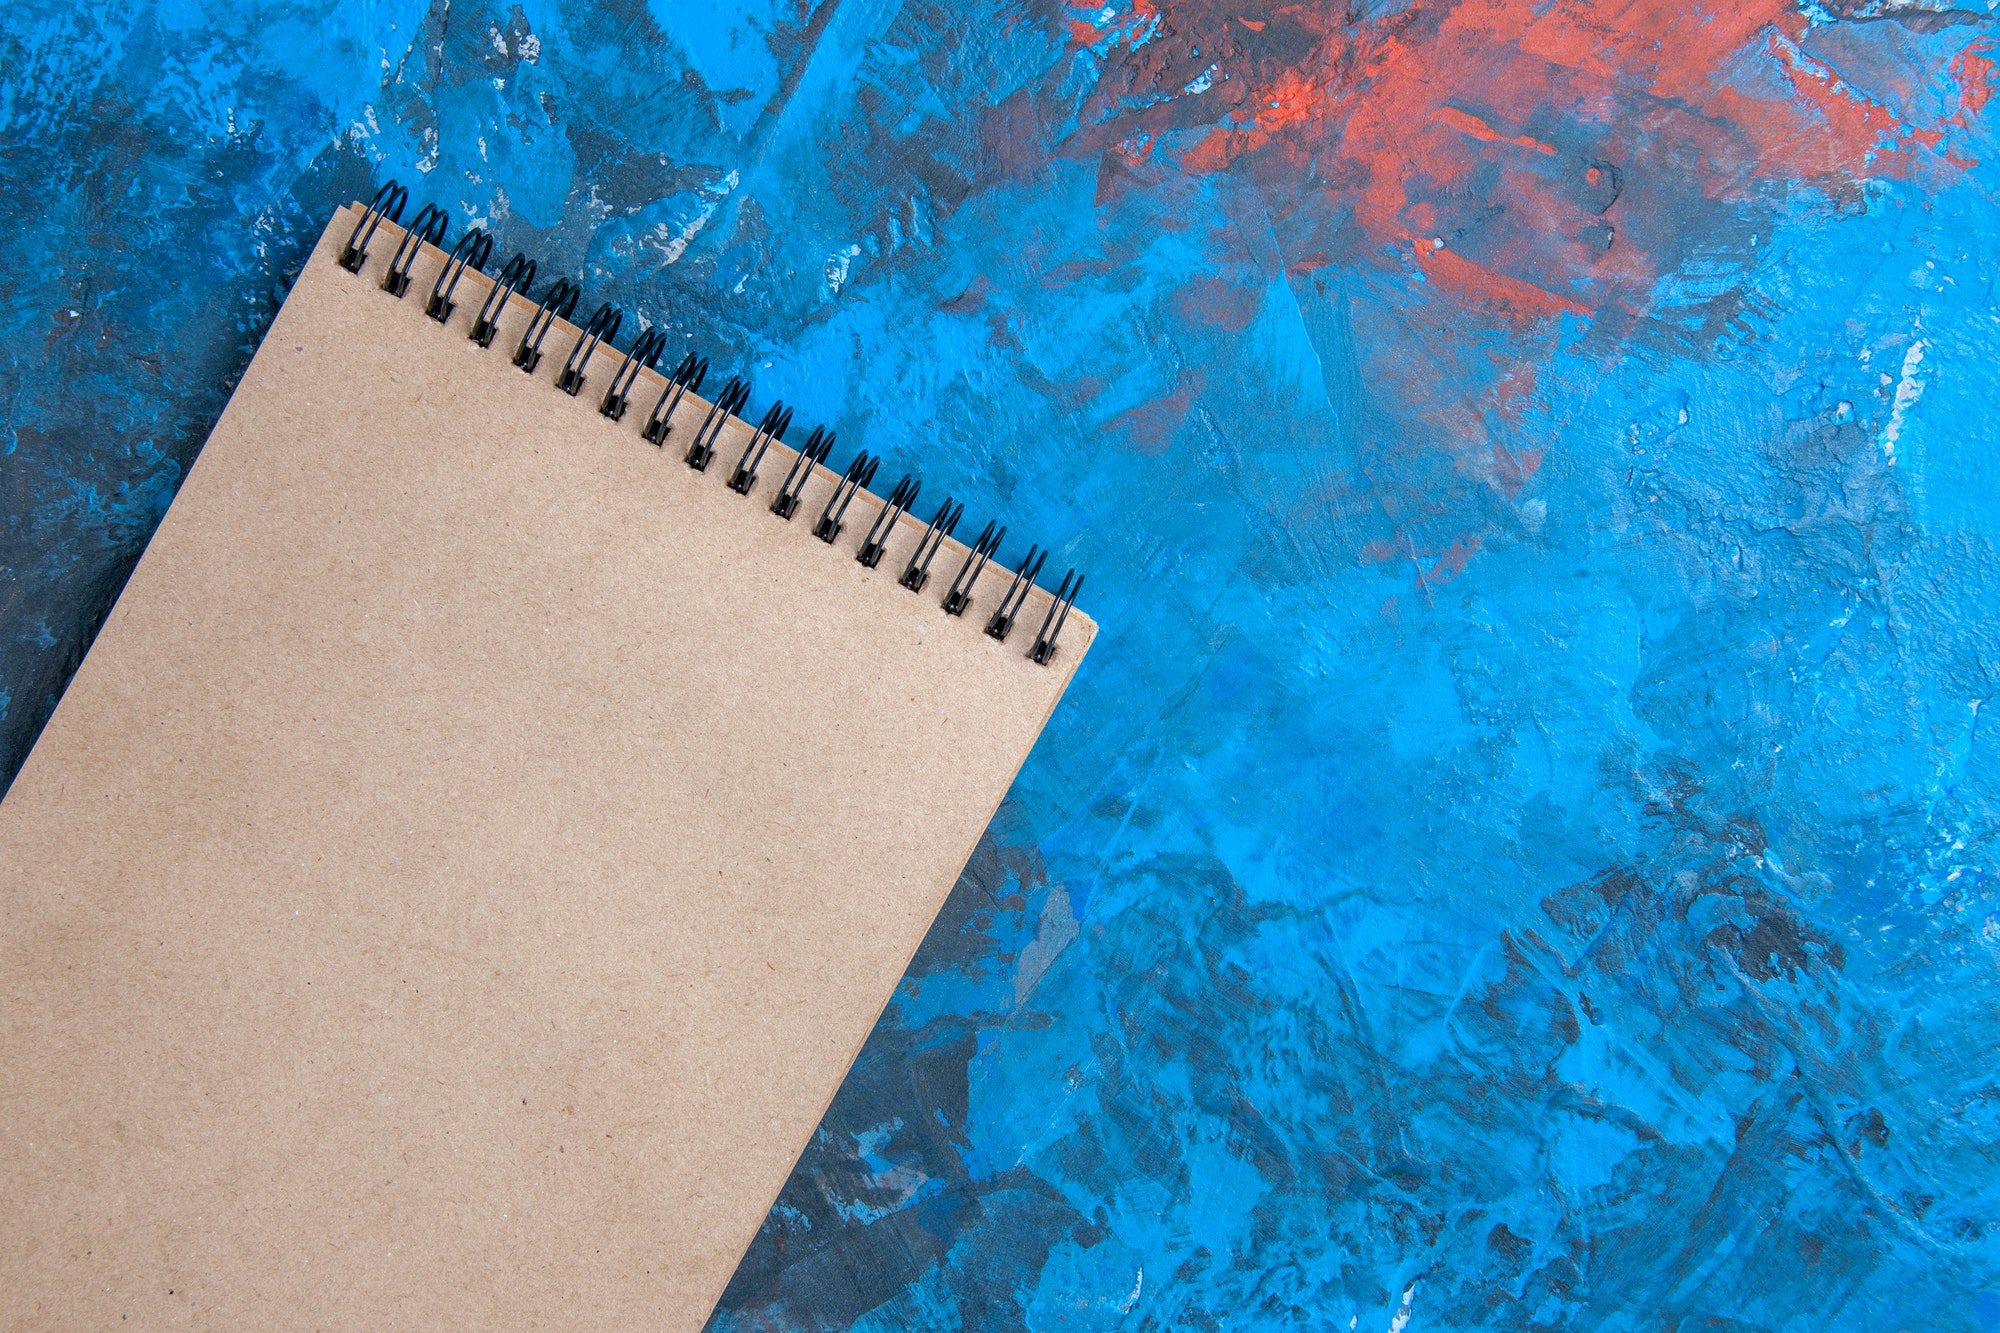 top close view a notebook on blue background free space